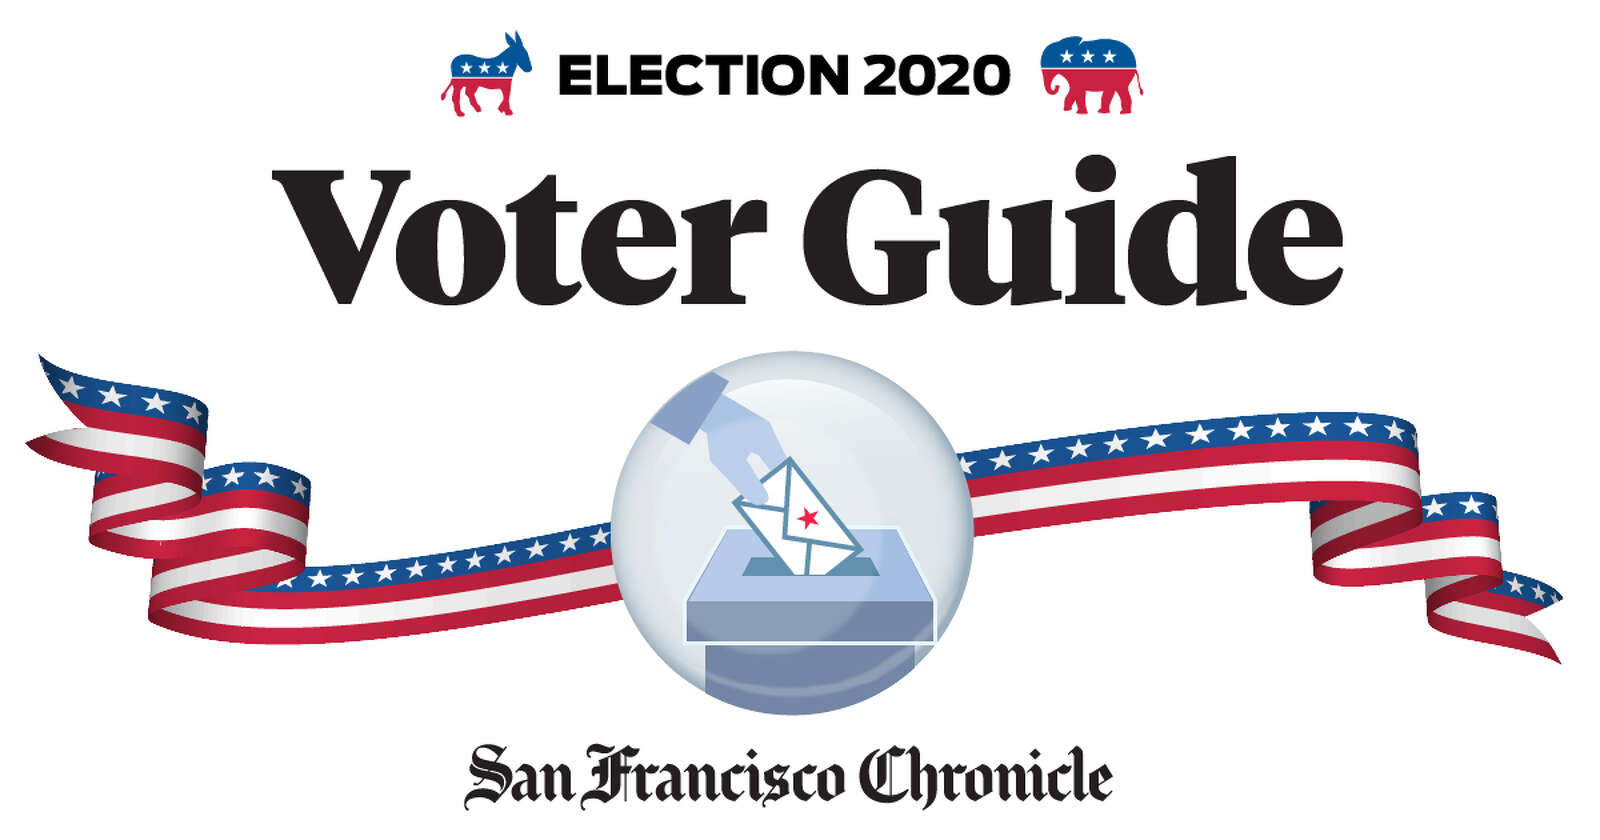 2020 Voter Guide For S F Bay Area What You Need To Know For November Election